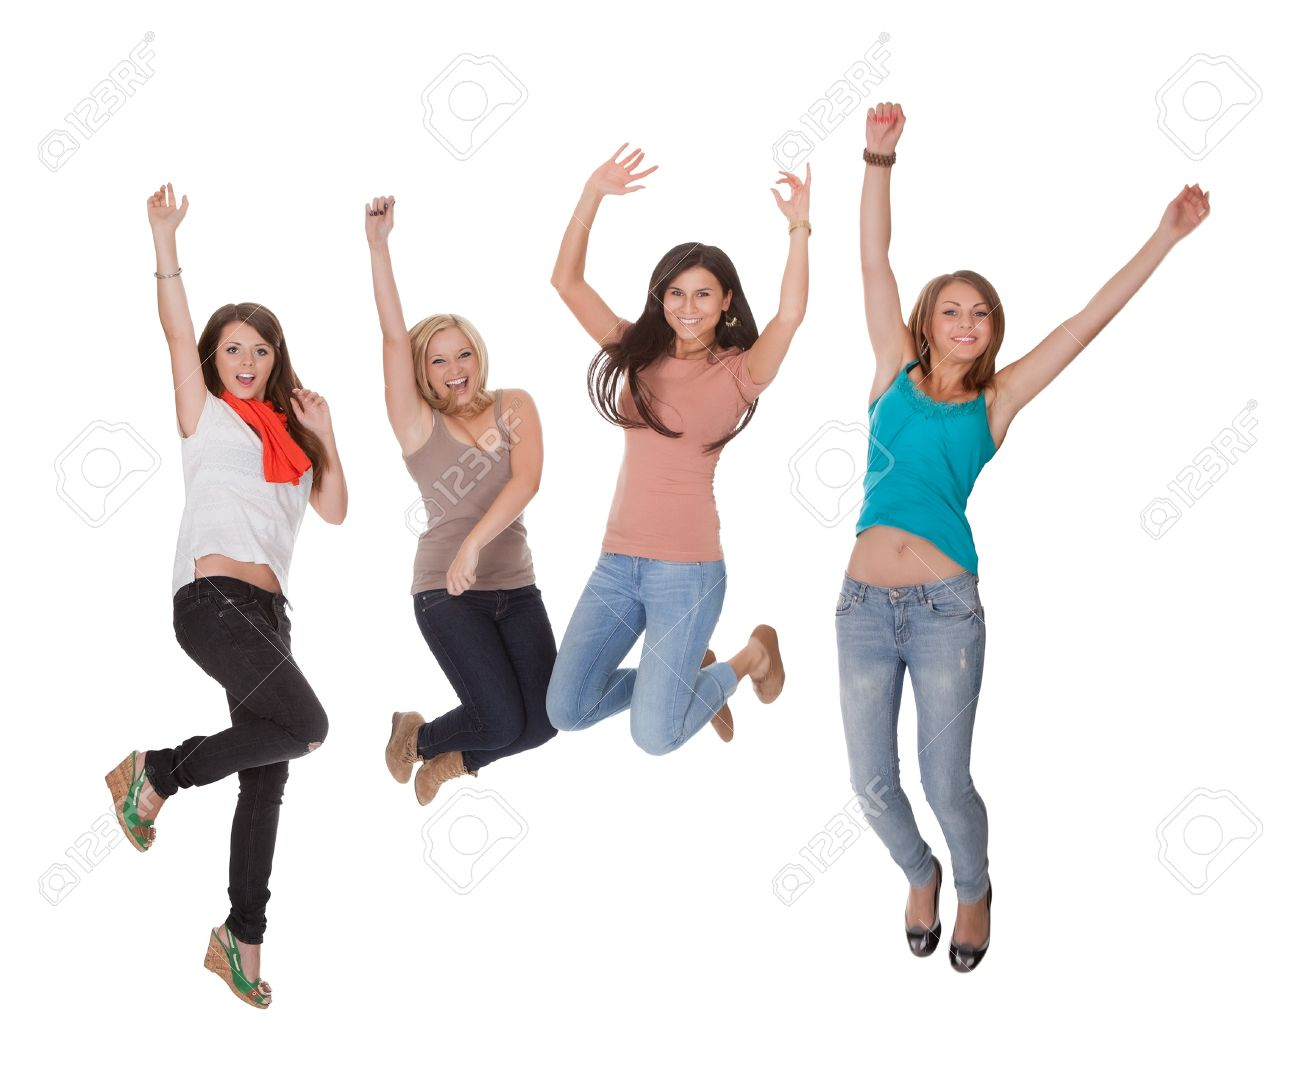 four excited young woman jumping for joy with their hands raised